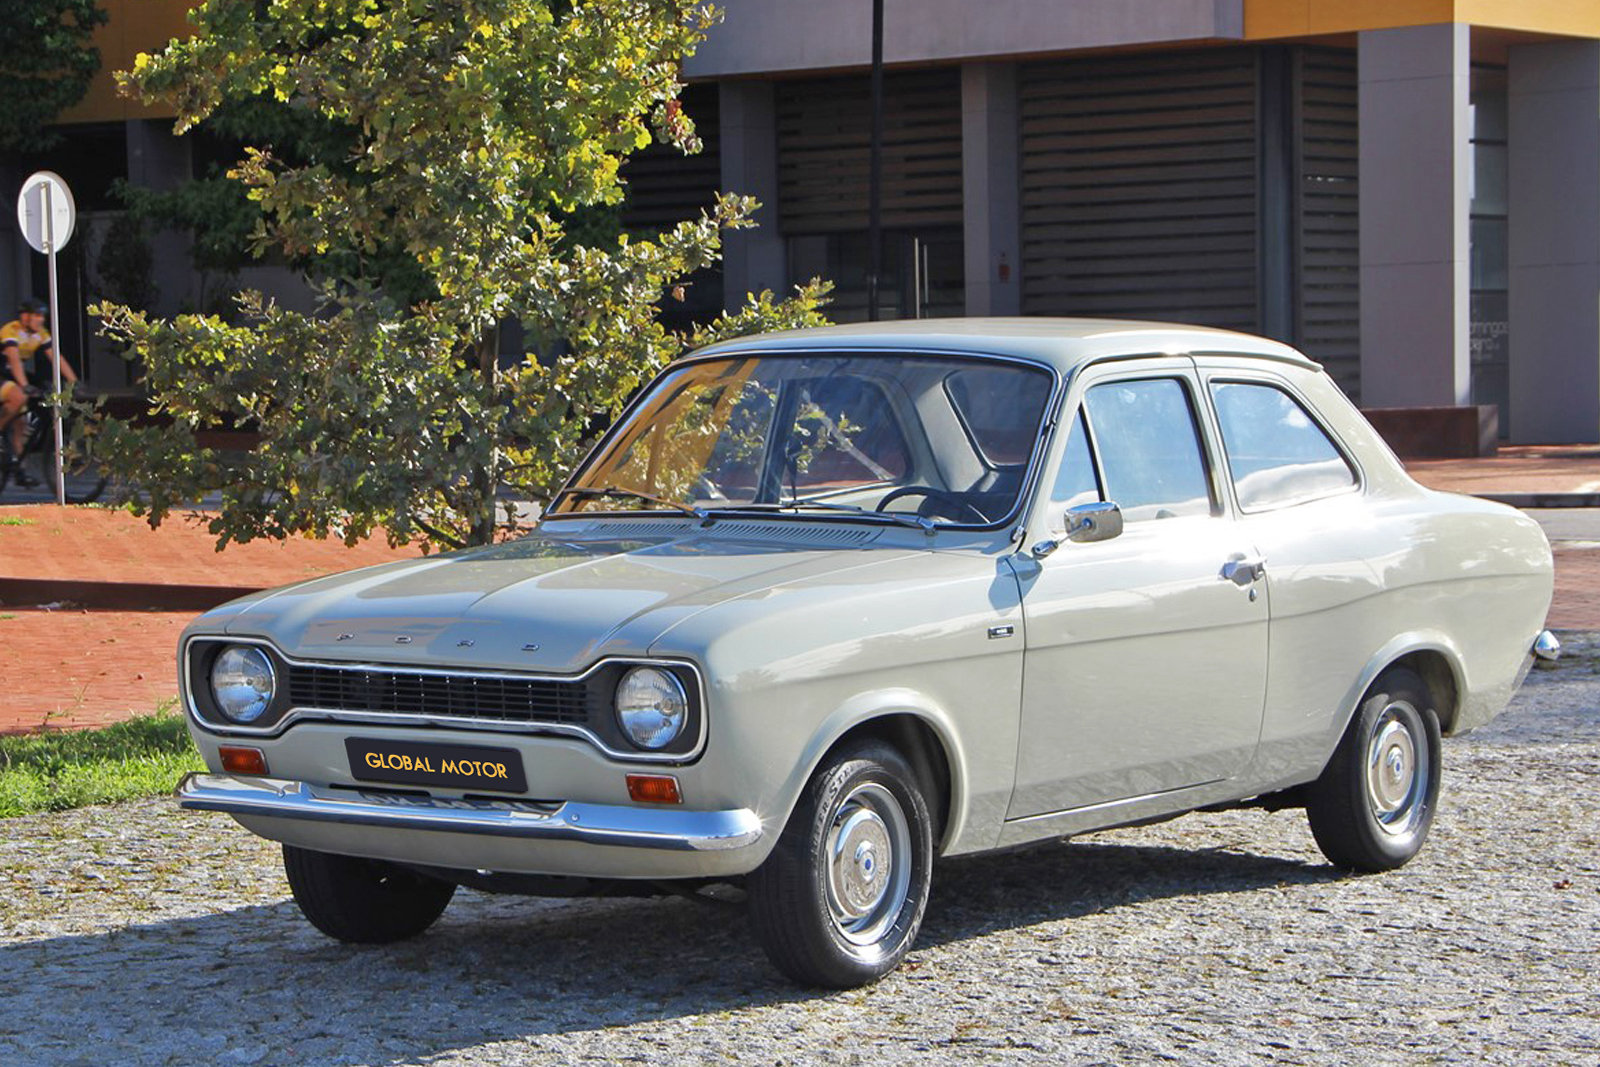 Ford Escort Mk1 - 2 doors - RESERVED